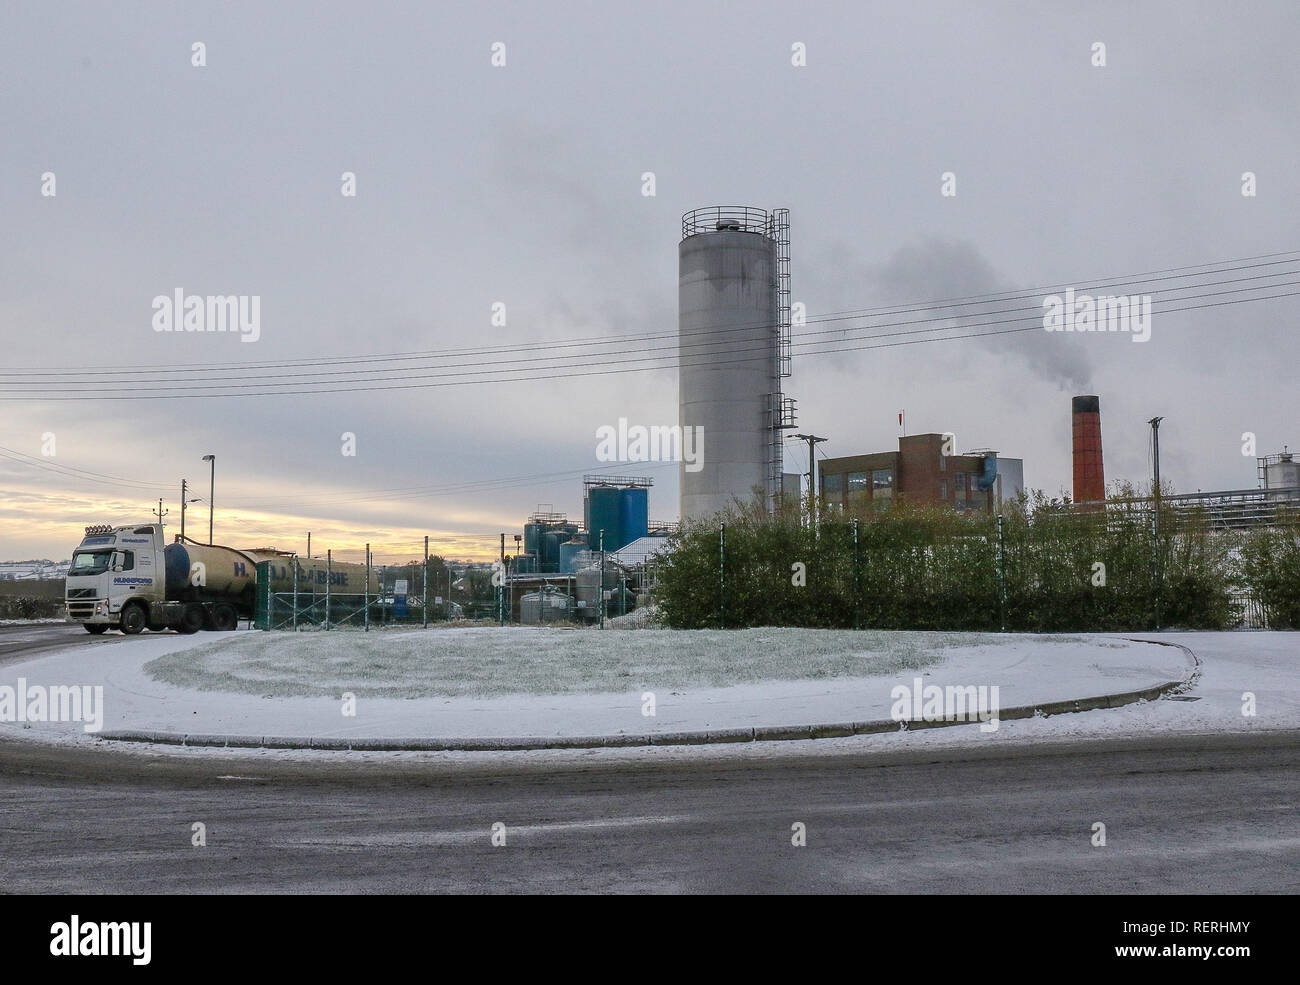 Magheralin, County Armagh, Northern, Ireland. 23rd Jan, 2019. Snow and ice made for tricky driving conditions off main roads. Milk tanker at the Glanbia cheese factory. Credit: David Hunter/Alamy Live News - Stock Image